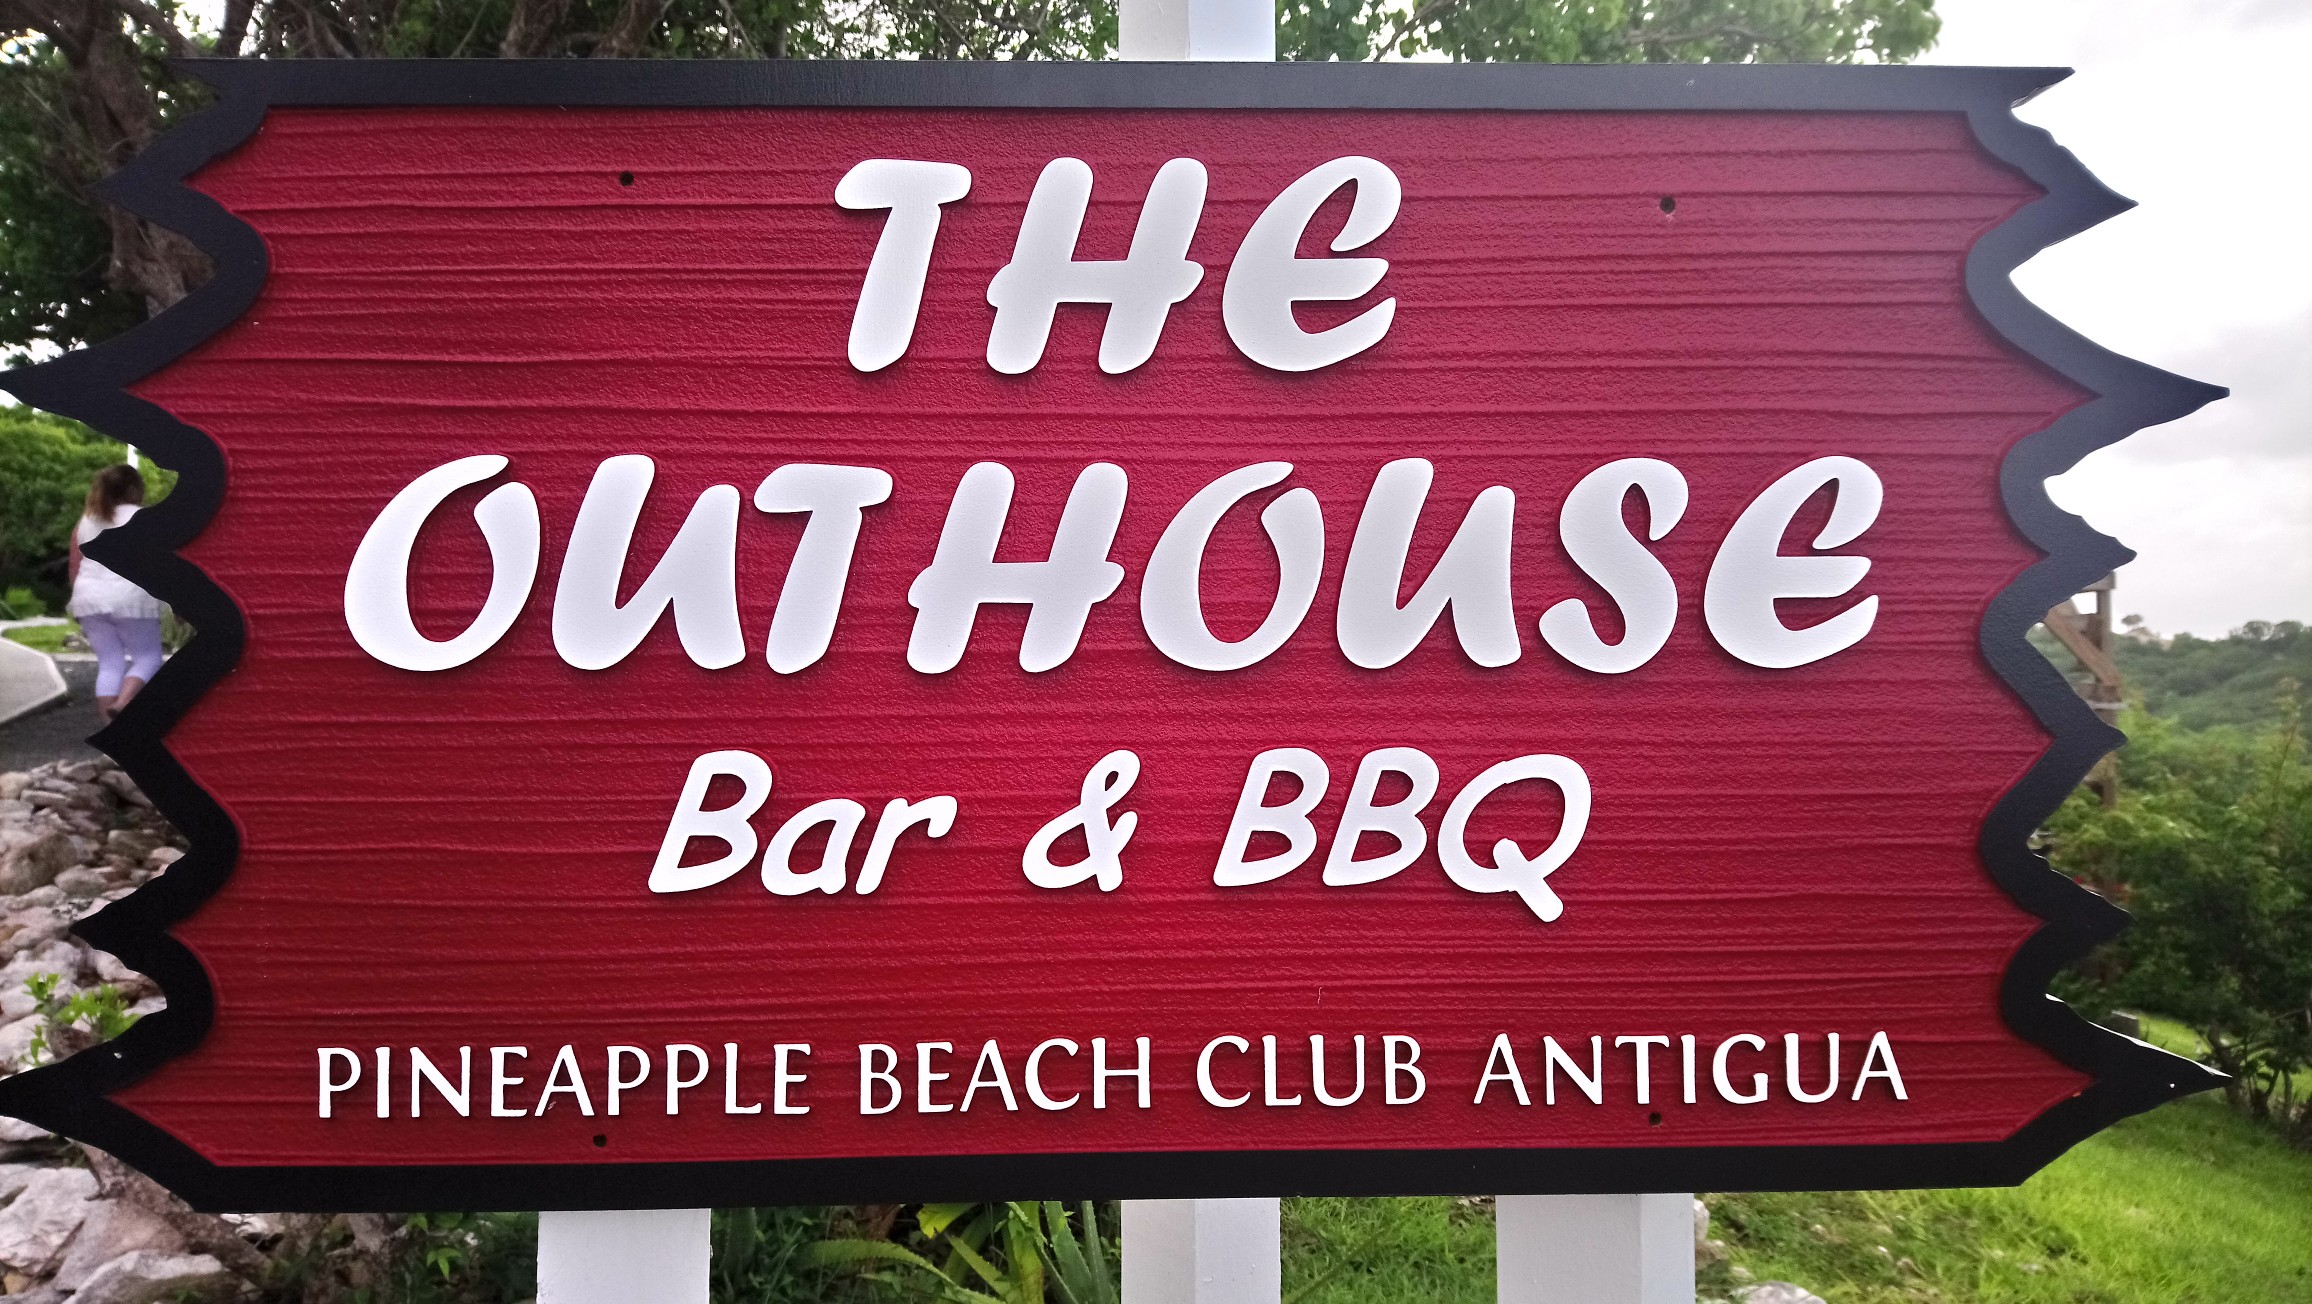 The Outhouse Restaurant at Pineapple Beach Club Antigua